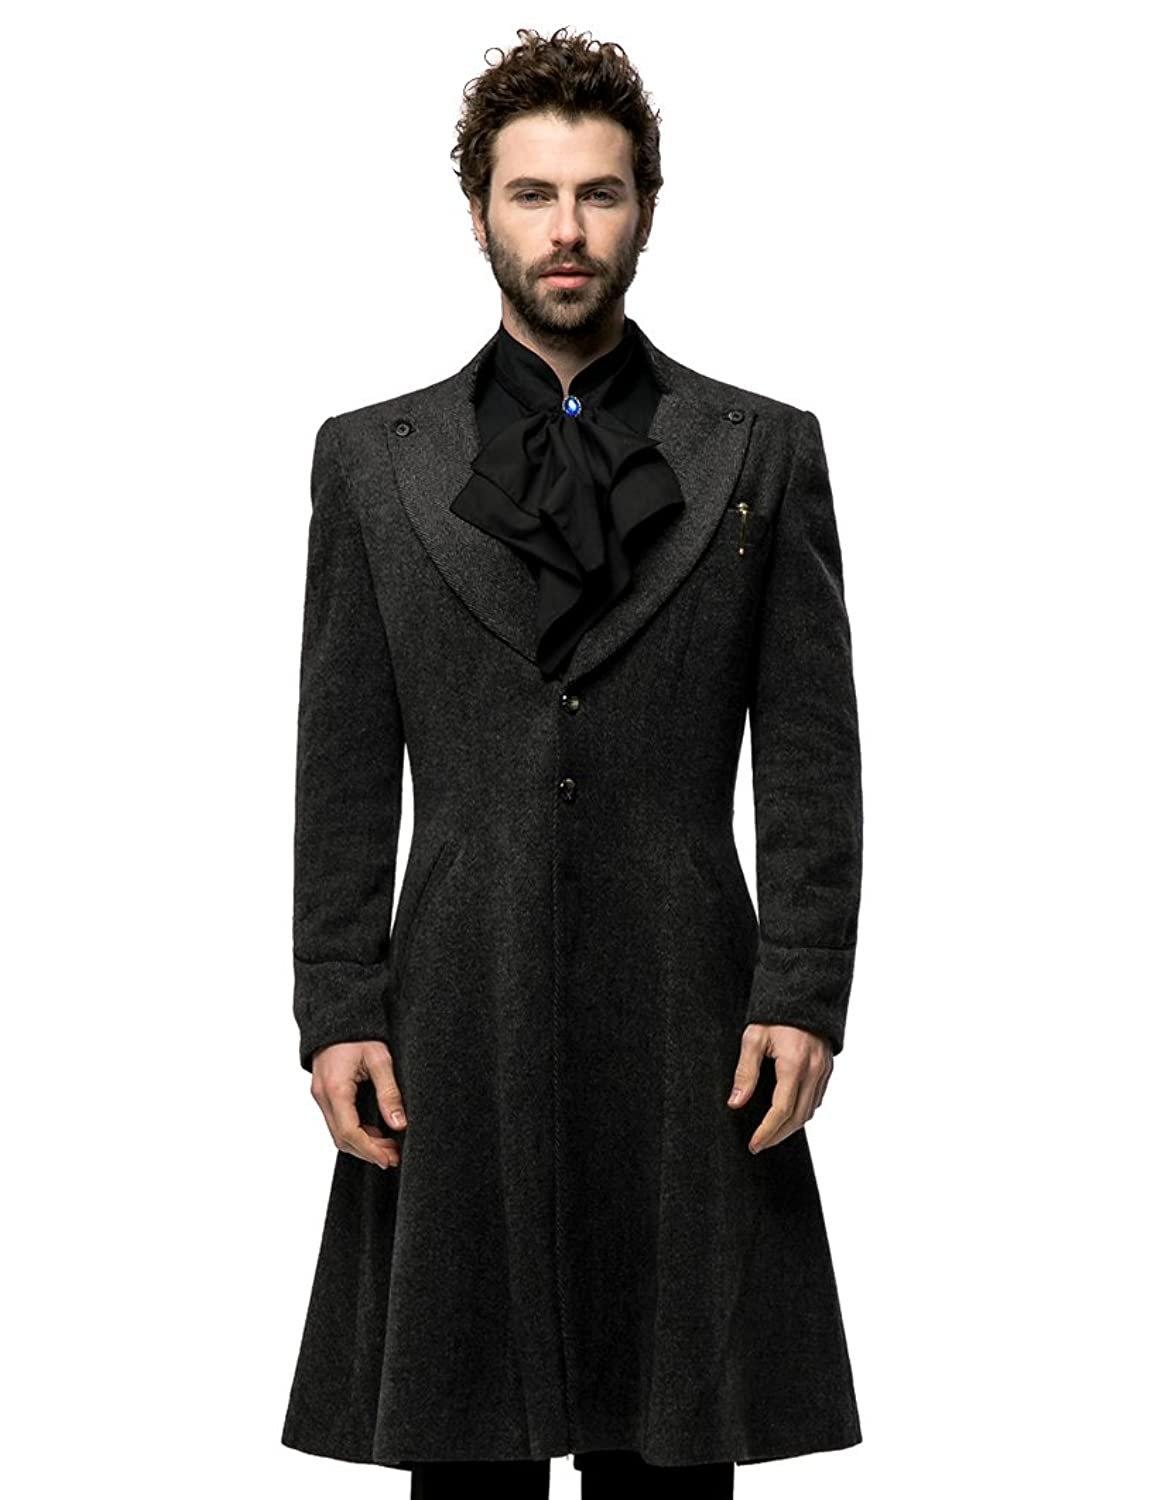 Steampunk Men's Coats Aristocrat Black&grey Wool Blend Long Coat for Man $195.00 AT vintagedancer.com